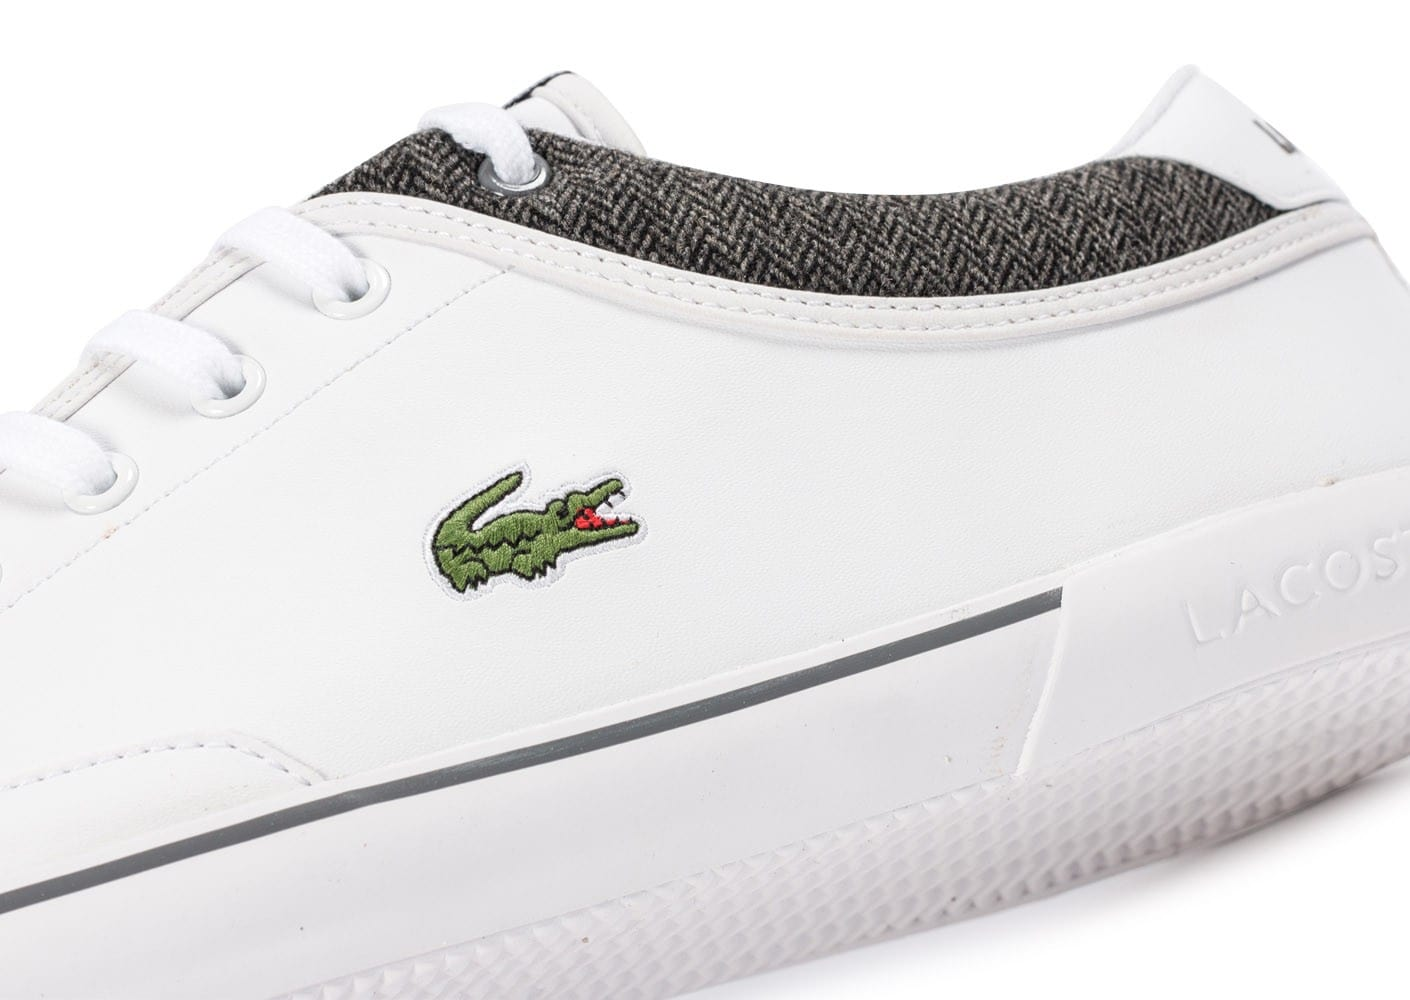 45191d04d4 Angha Lacoste Baskets Chaussures Cuir Chausport Blanche Homme YIf6mybv7g